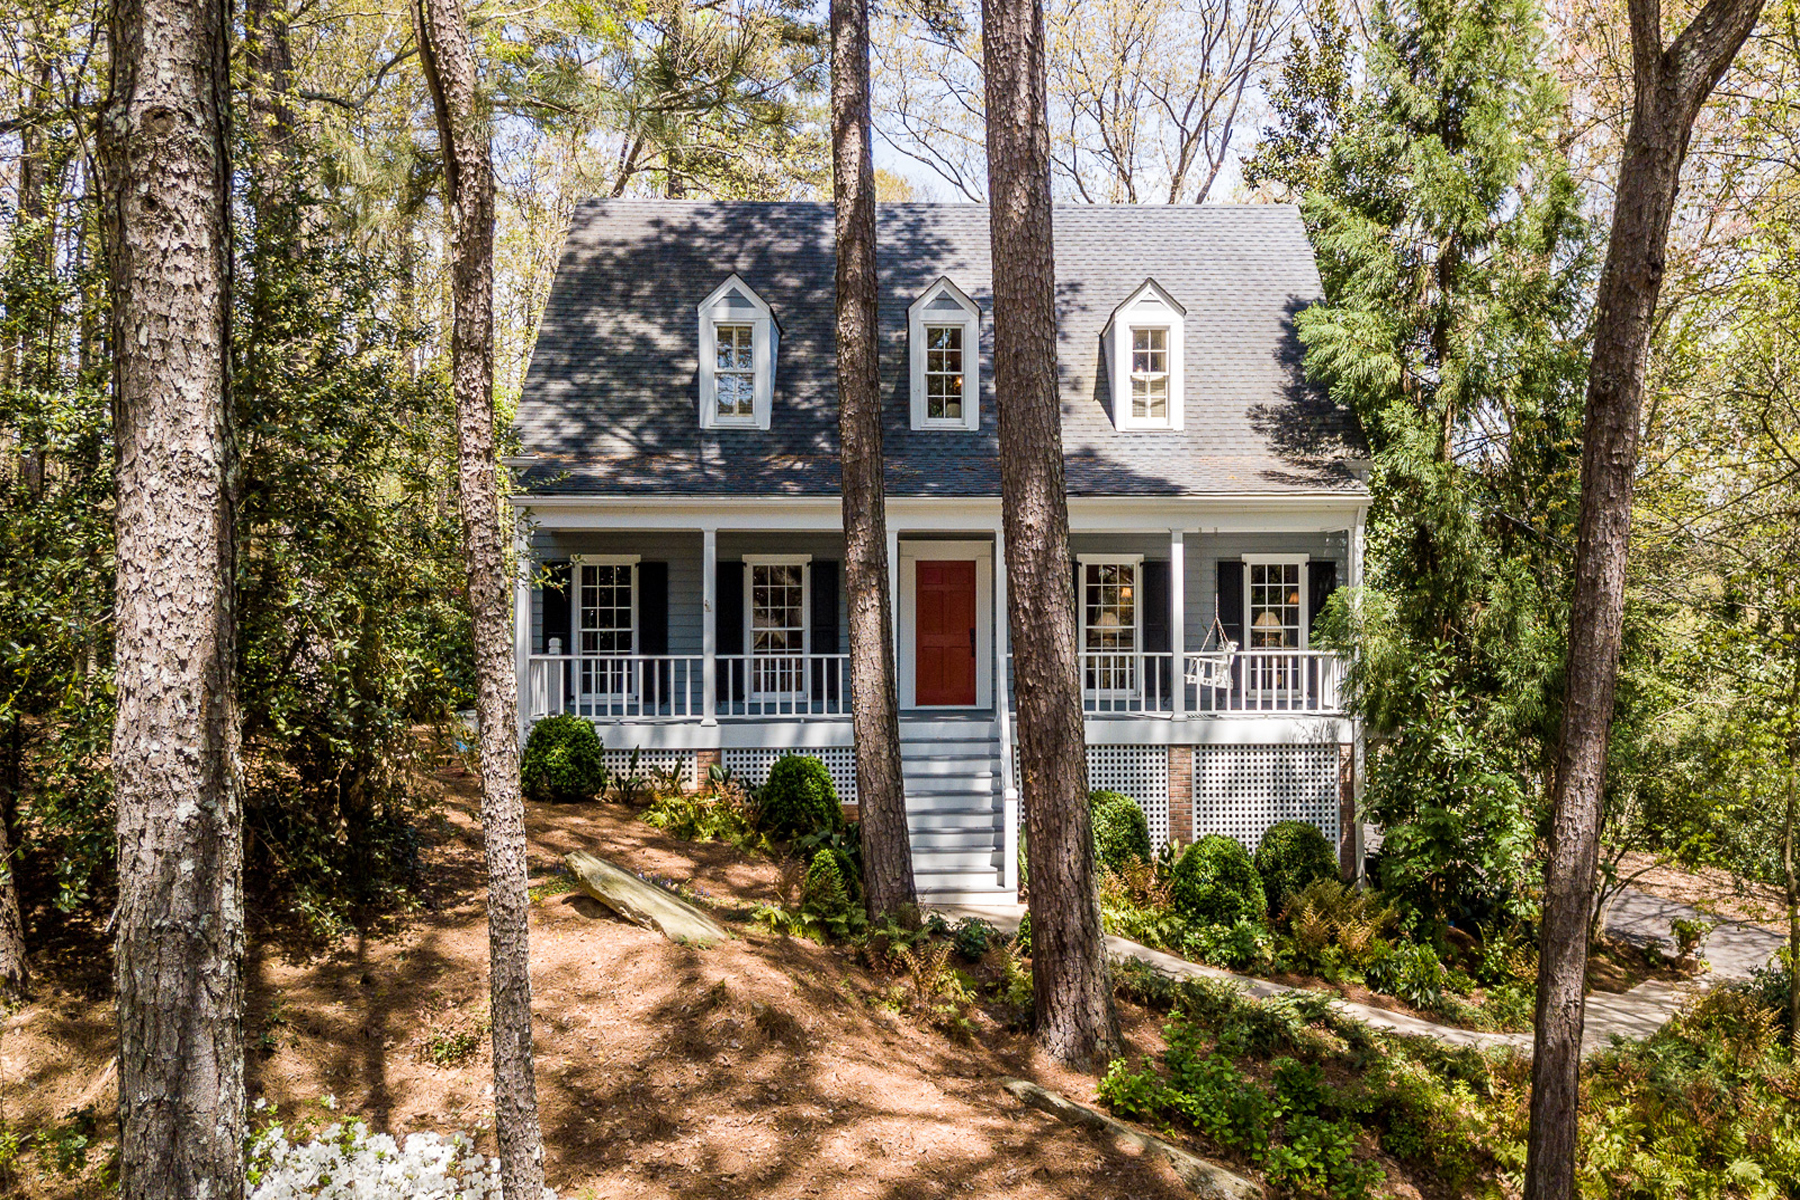 Single Family Home for Sale at Beautiful Home Situated On 1+ Acres On Sought After Cochise Drive 3363 Cochise Drive SE Atlanta, Georgia 30339 United States